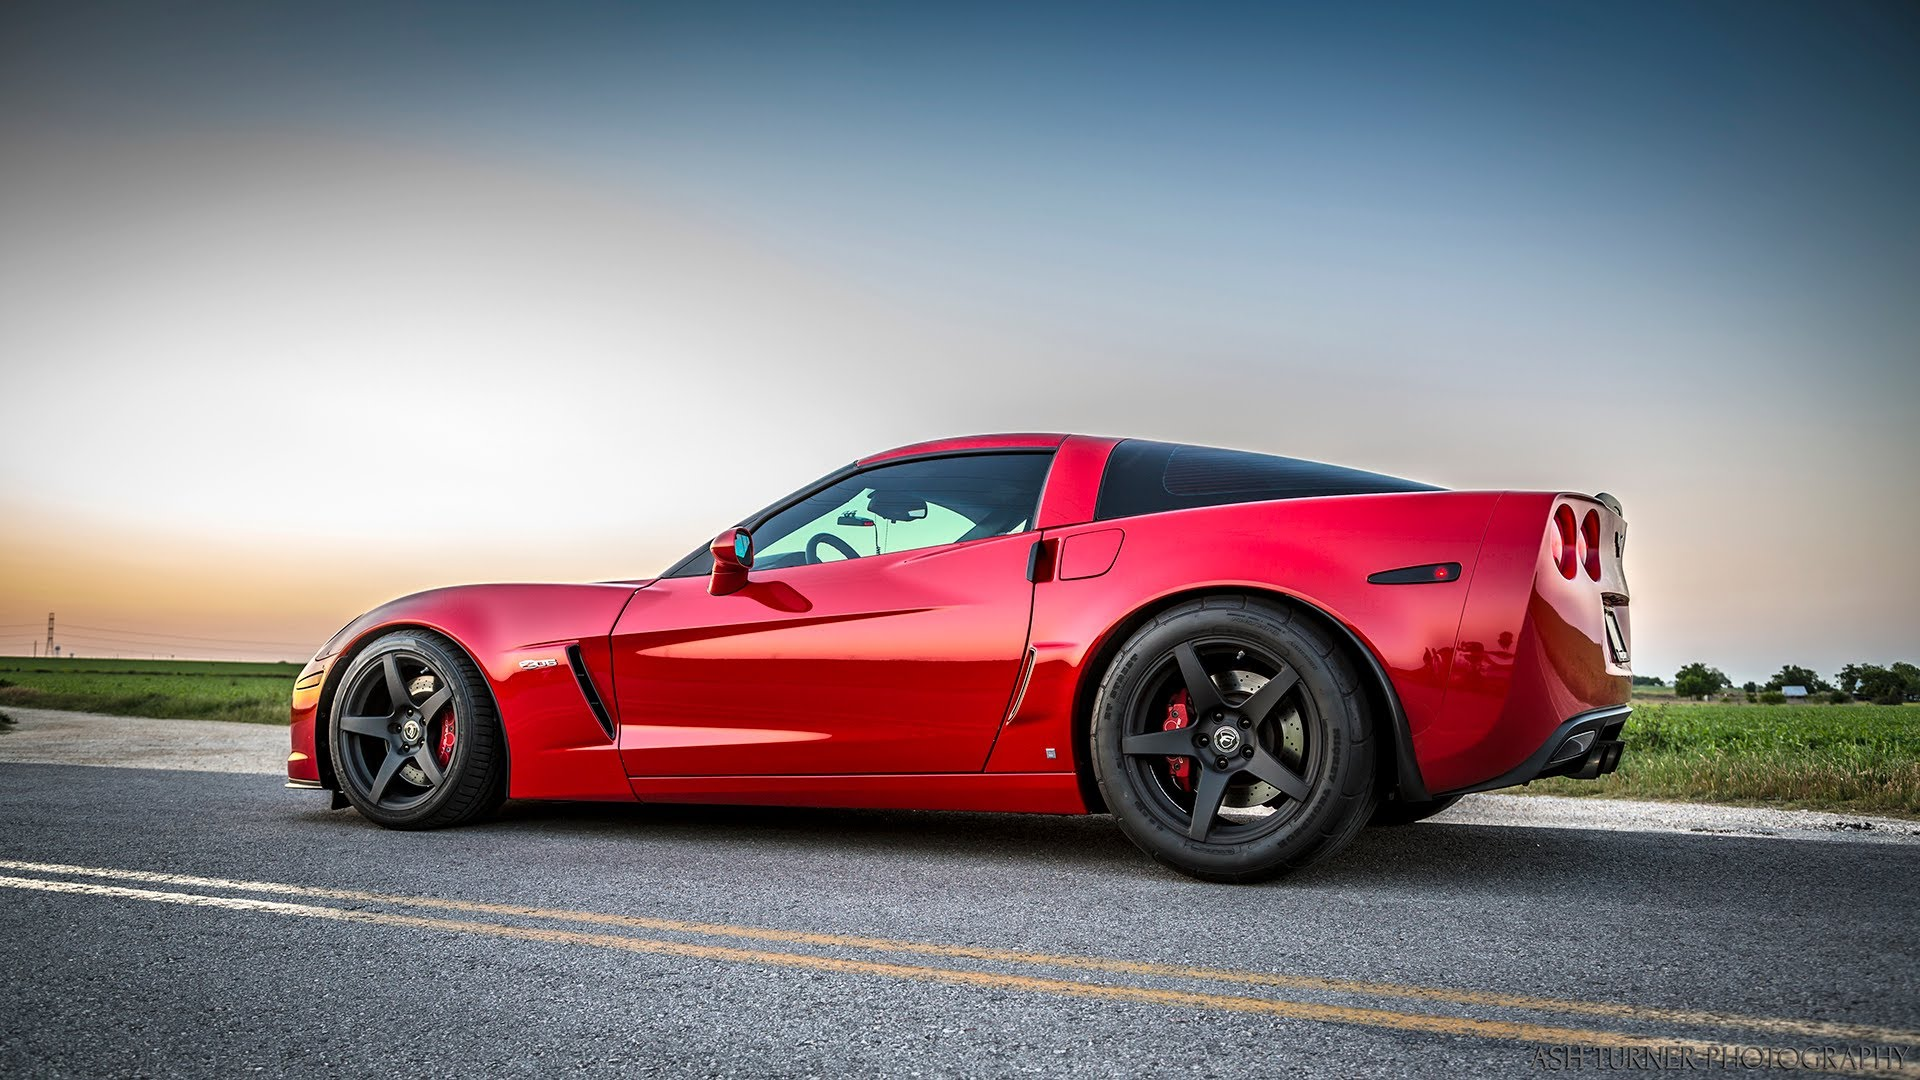 c6 corvette z06 supercharged stage 5r dallas performance 1000 hp vettetube corvette videos. Black Bedroom Furniture Sets. Home Design Ideas